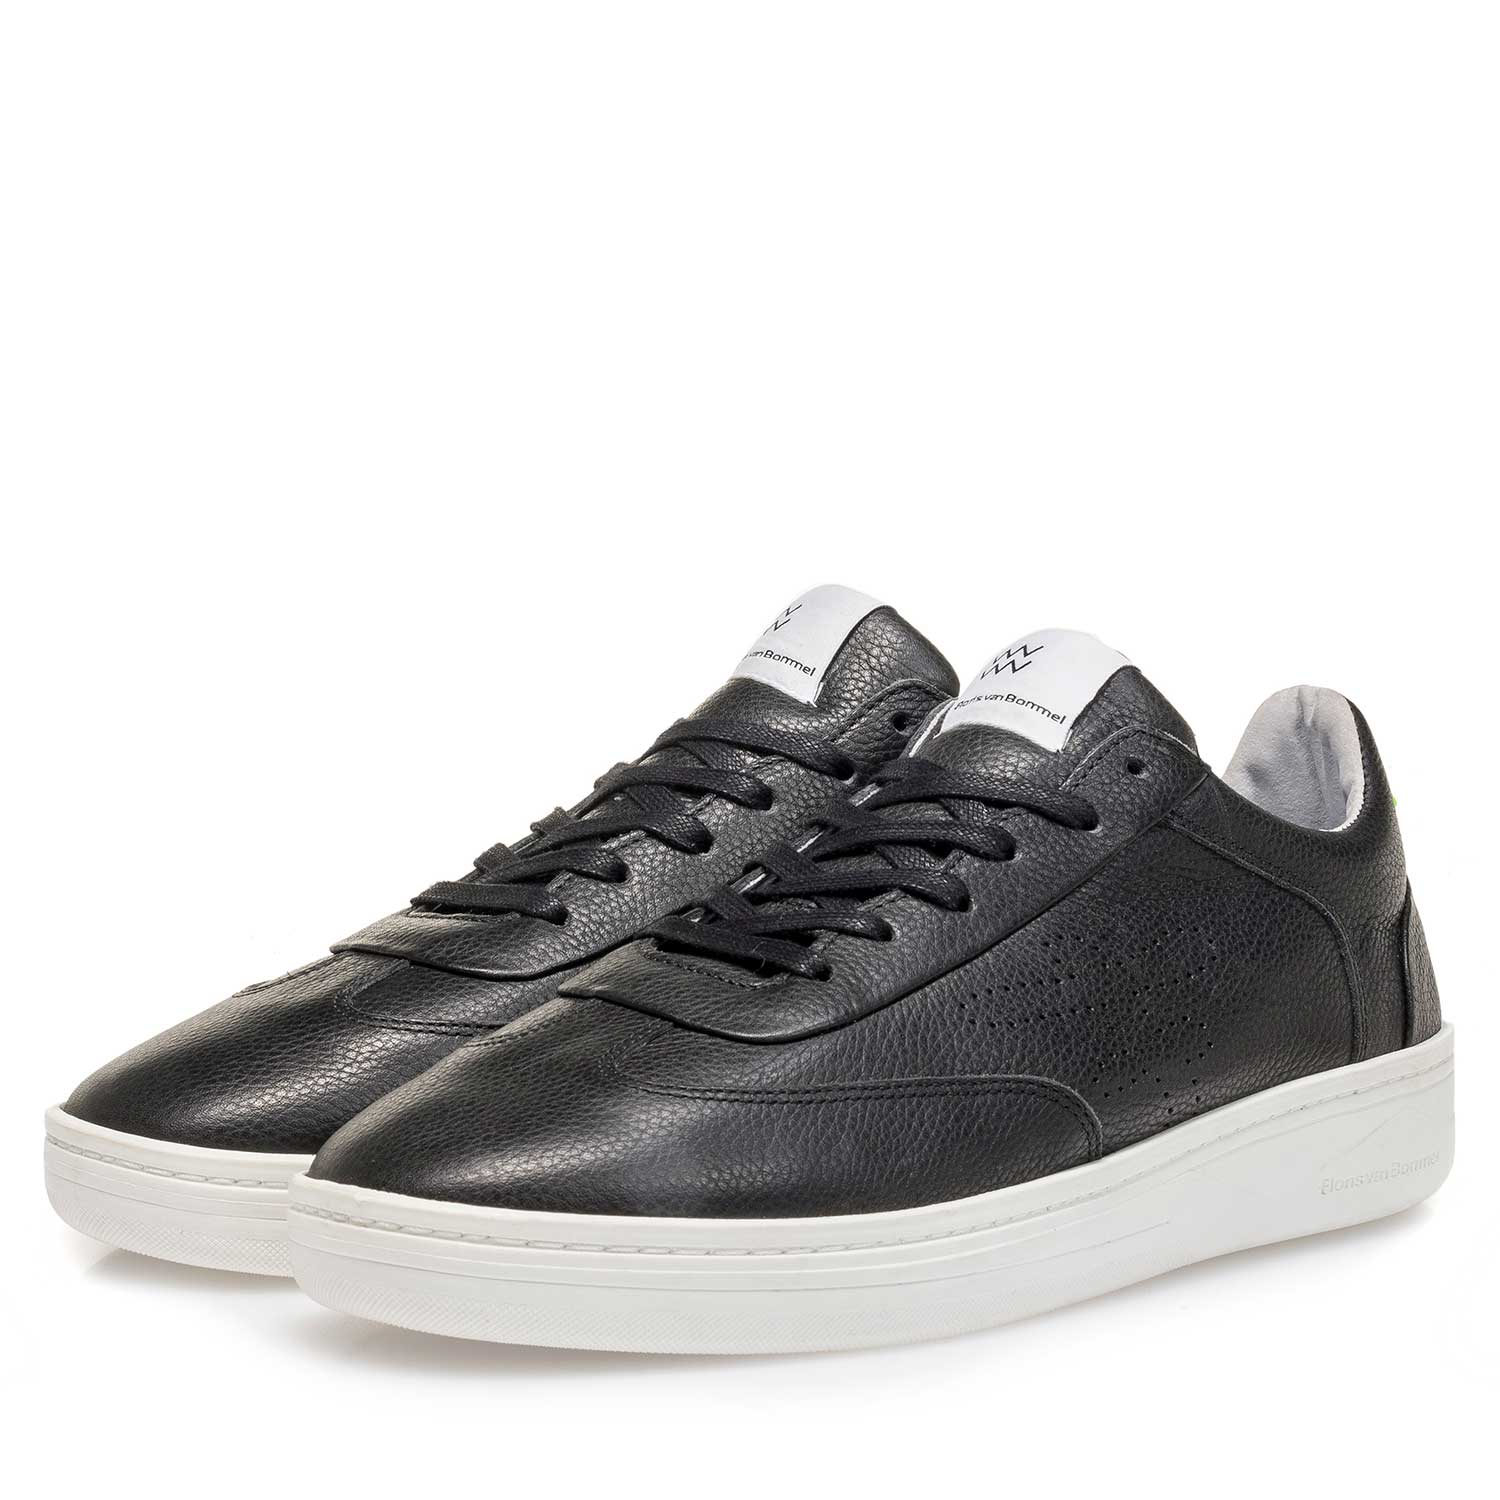 16255/04 - Black leather sneaker